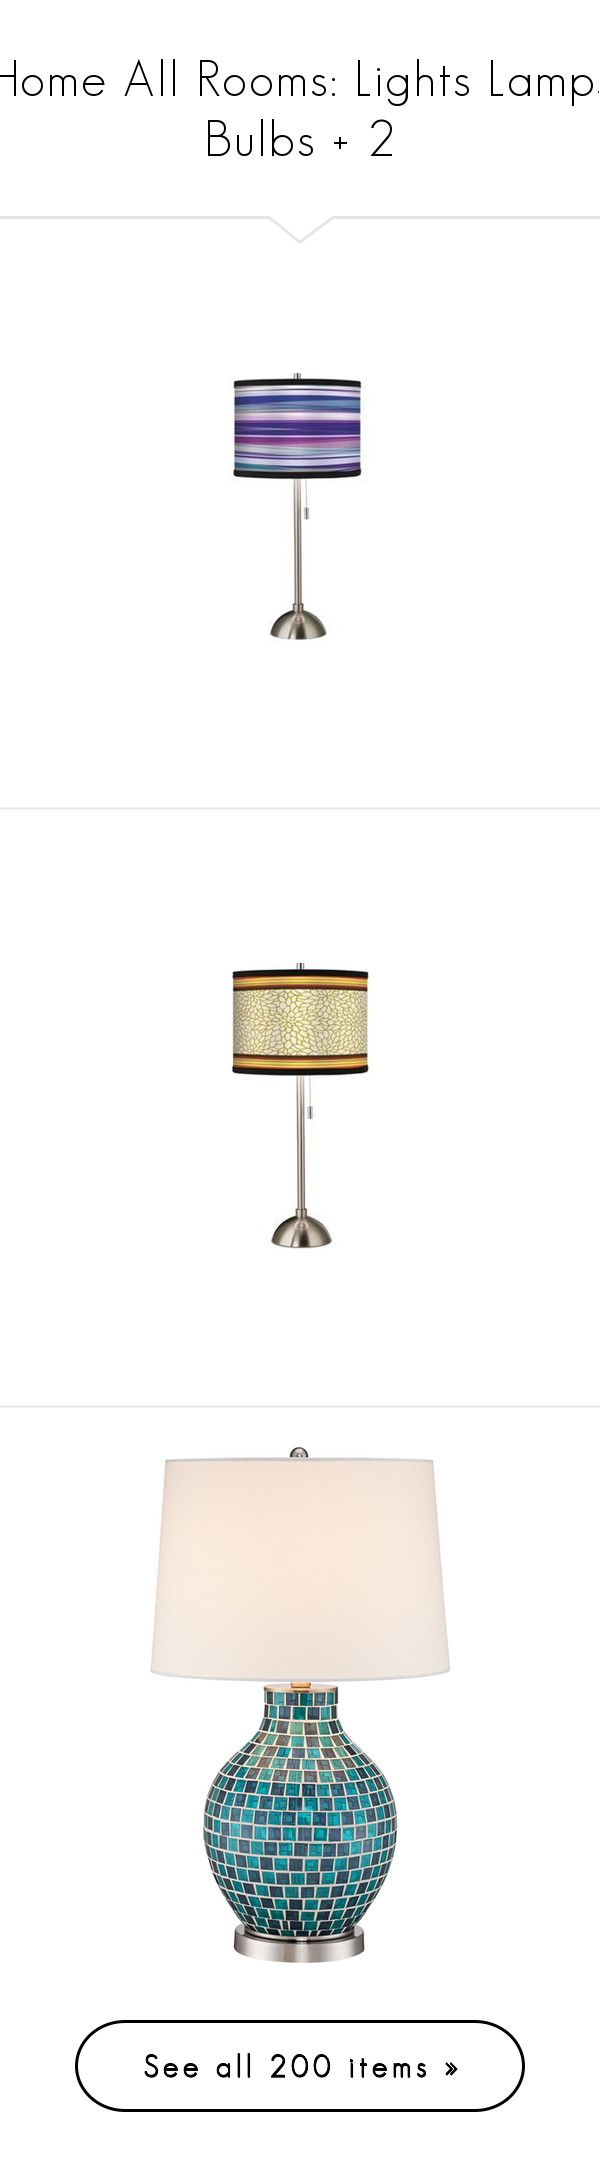 """""""Home All Rooms: Lights Lamps Bulbs + 2"""" by gwenie-darkpath ❤ liked on Polyvore featuring home, lighting, table lamps, neon color lights, purple table lamp, purple neon lights, neon shades, purple shades, colorful lamps and contemporary table lamps"""